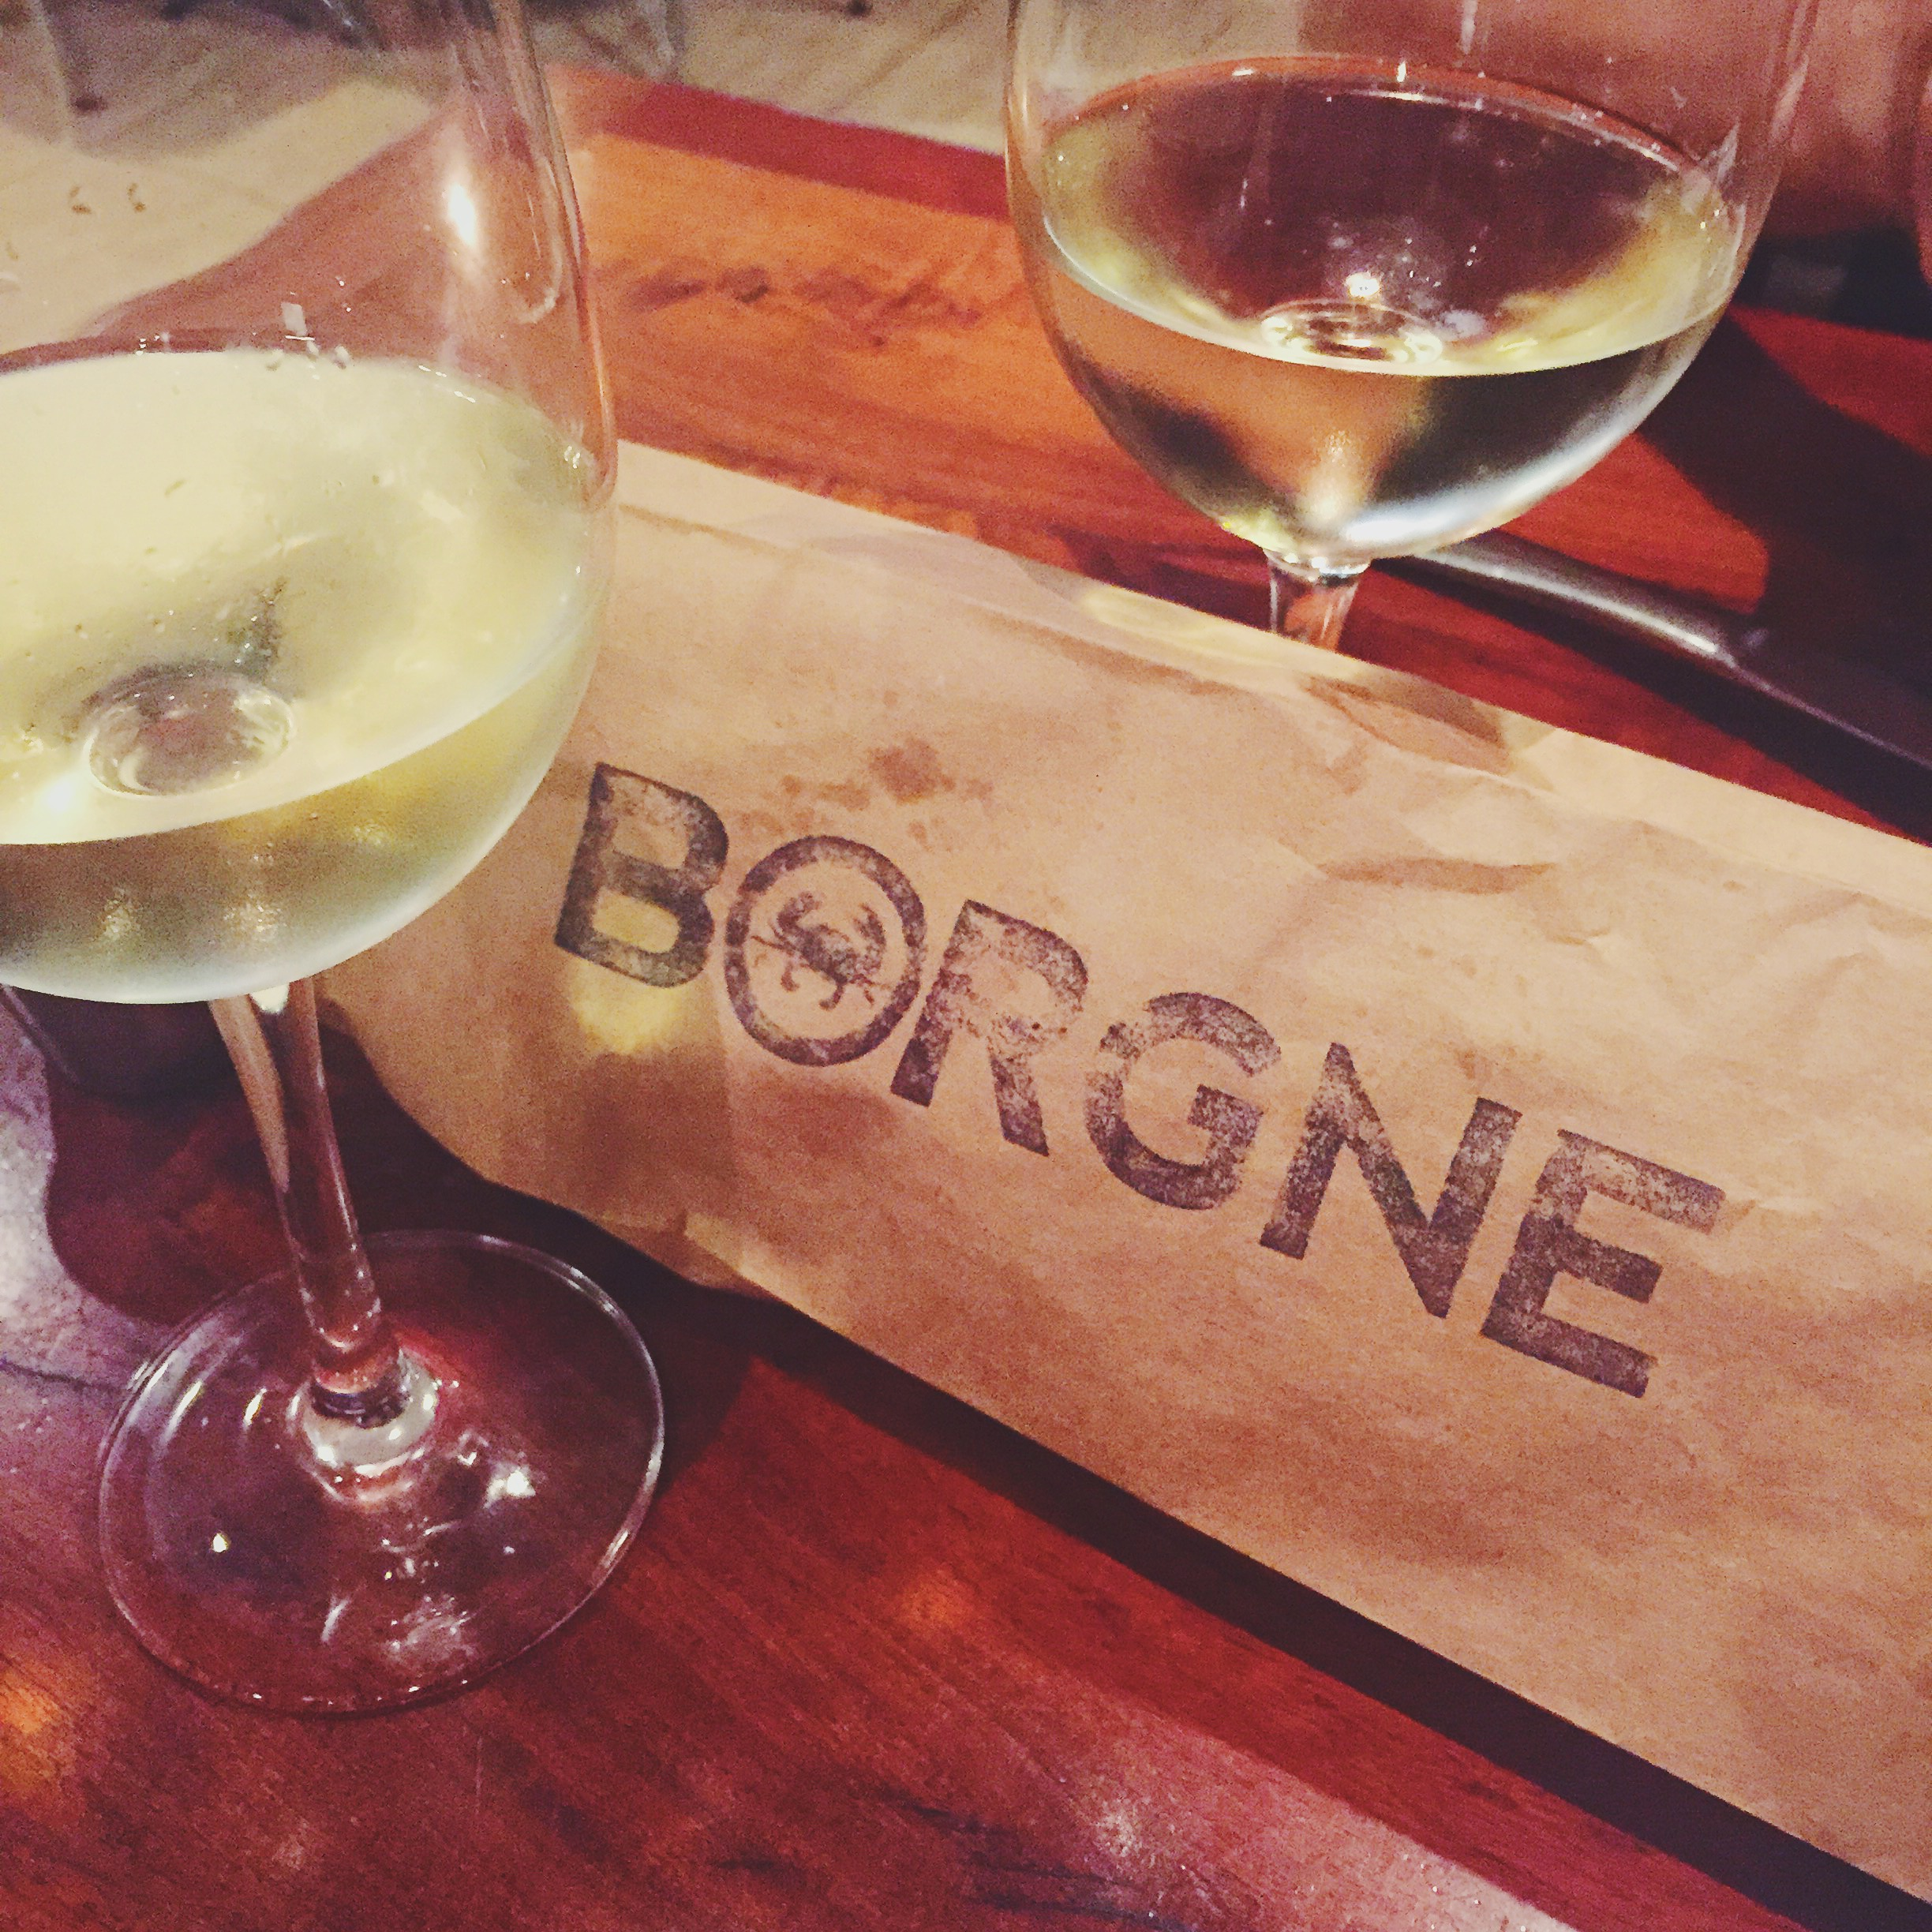 Warm bread and chilled wine at Borgne, New Orleans, La